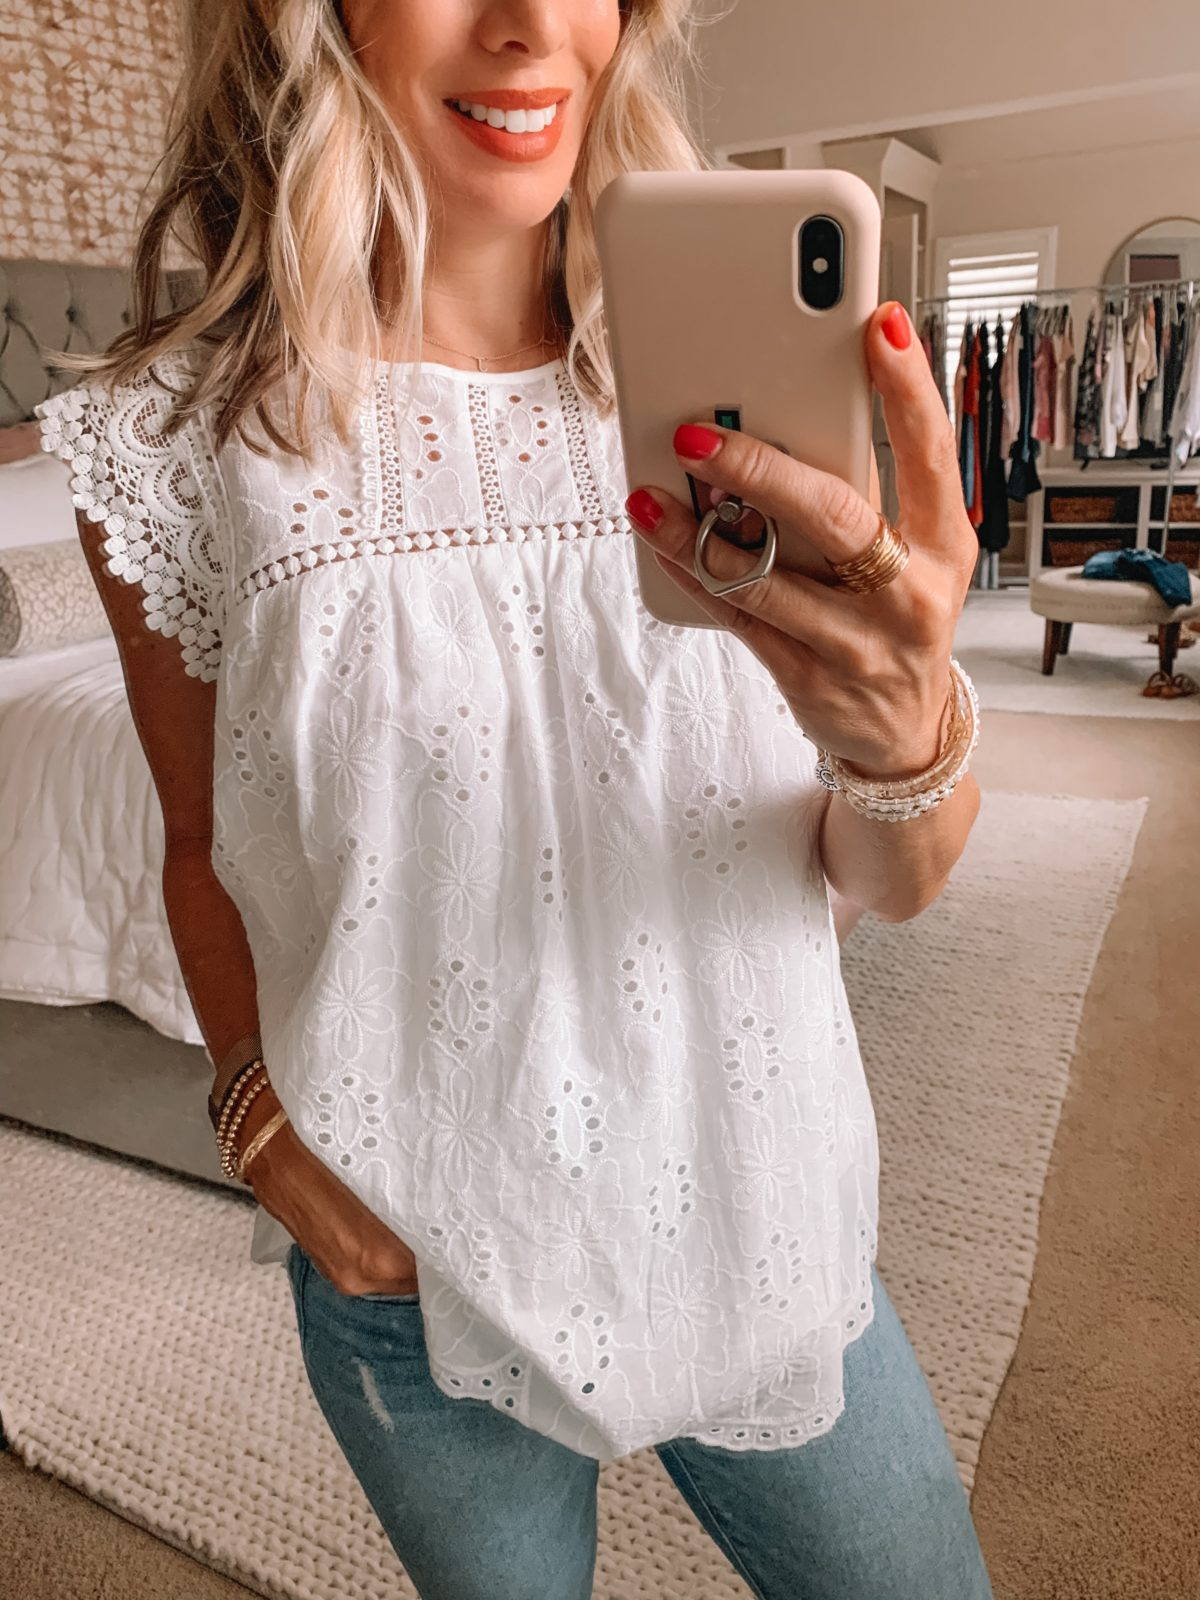 Dressing Room Finds Nordstrom and Target, White Eyelet Top, Skinny Jeans